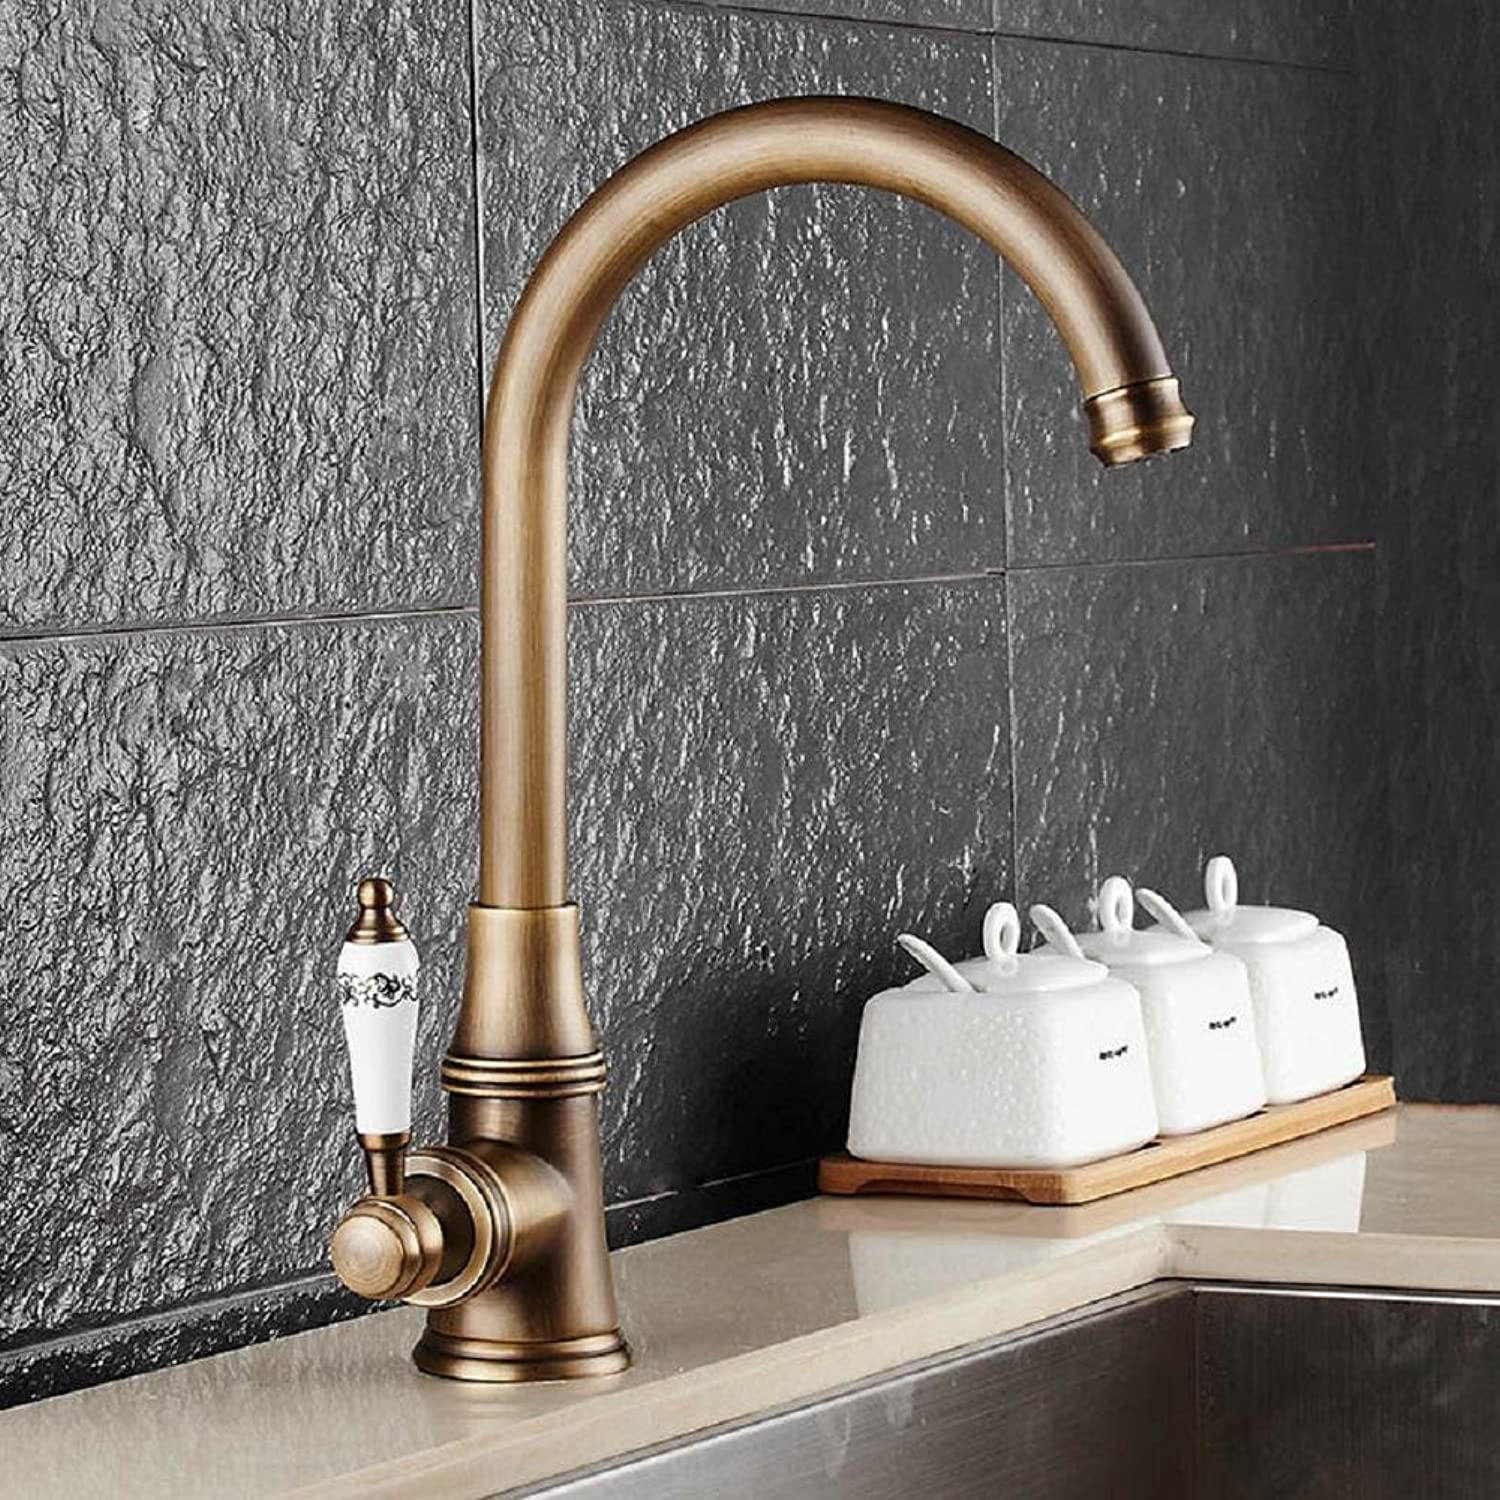 JYHJ Antique copper faucet single-hole single hot and cold can be redated